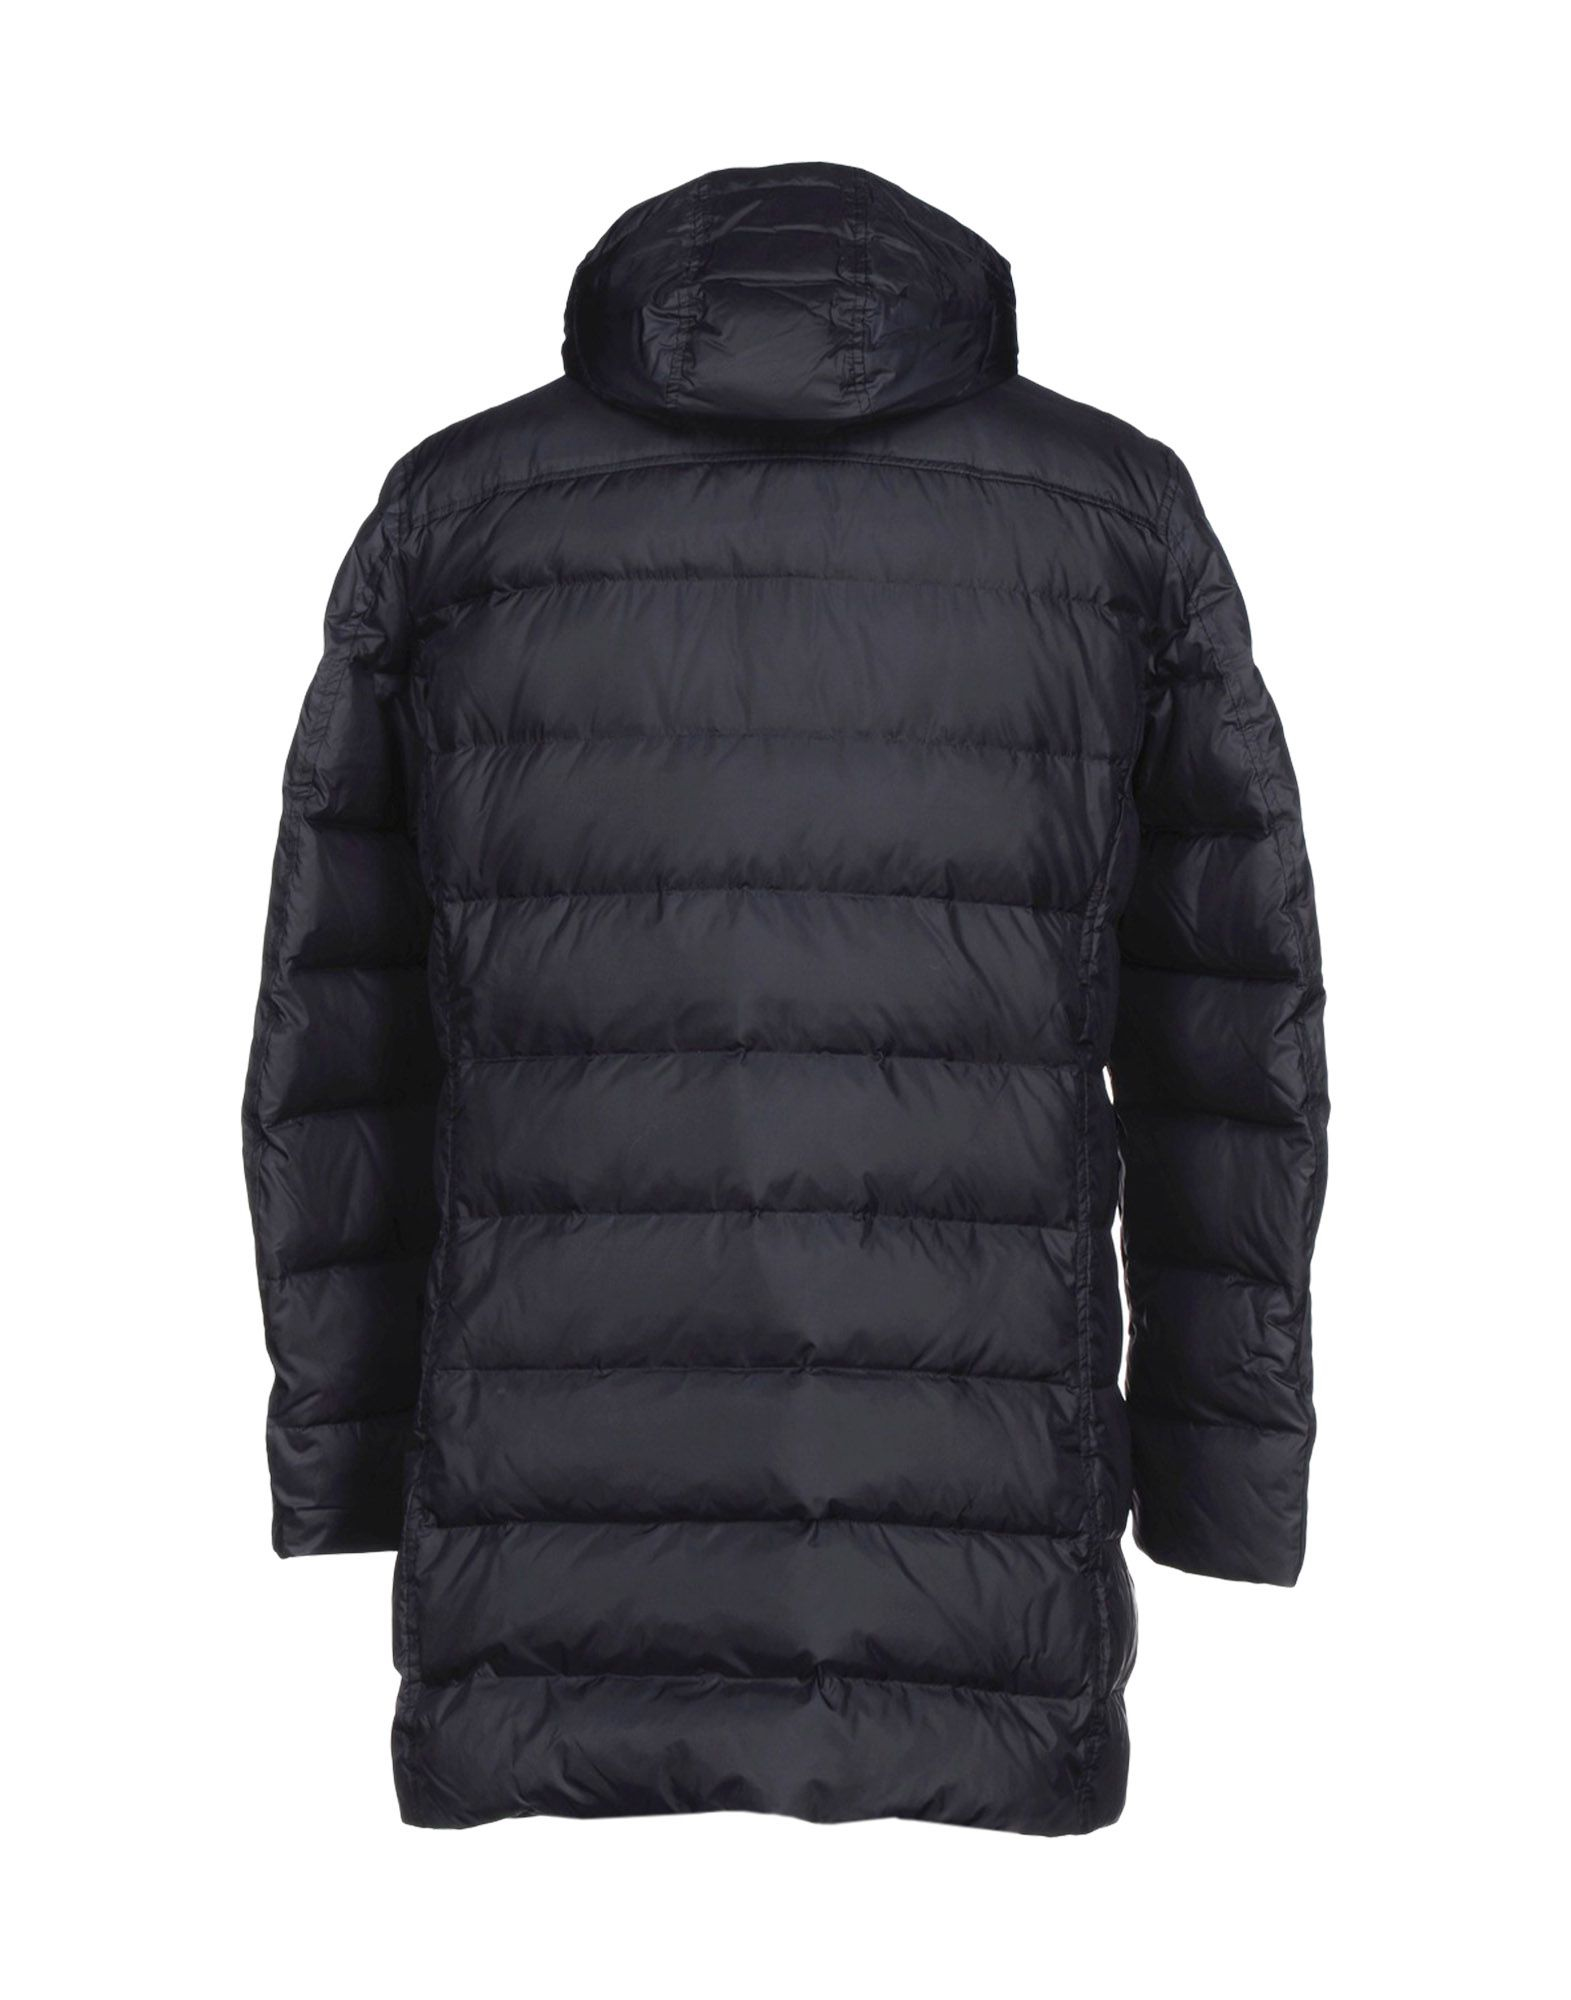 2be0f1a59 Love Moschino Gray Down Jacket for men